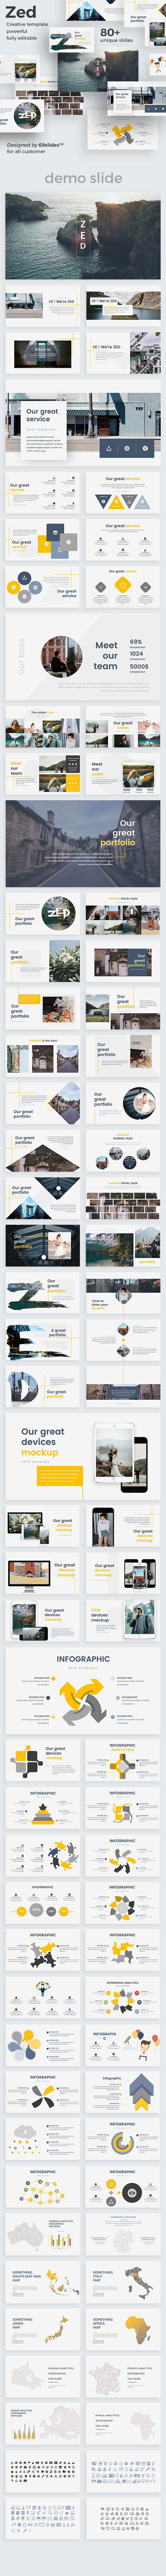 GraphicRiver Zed Creative Powerpoint Template 20986933